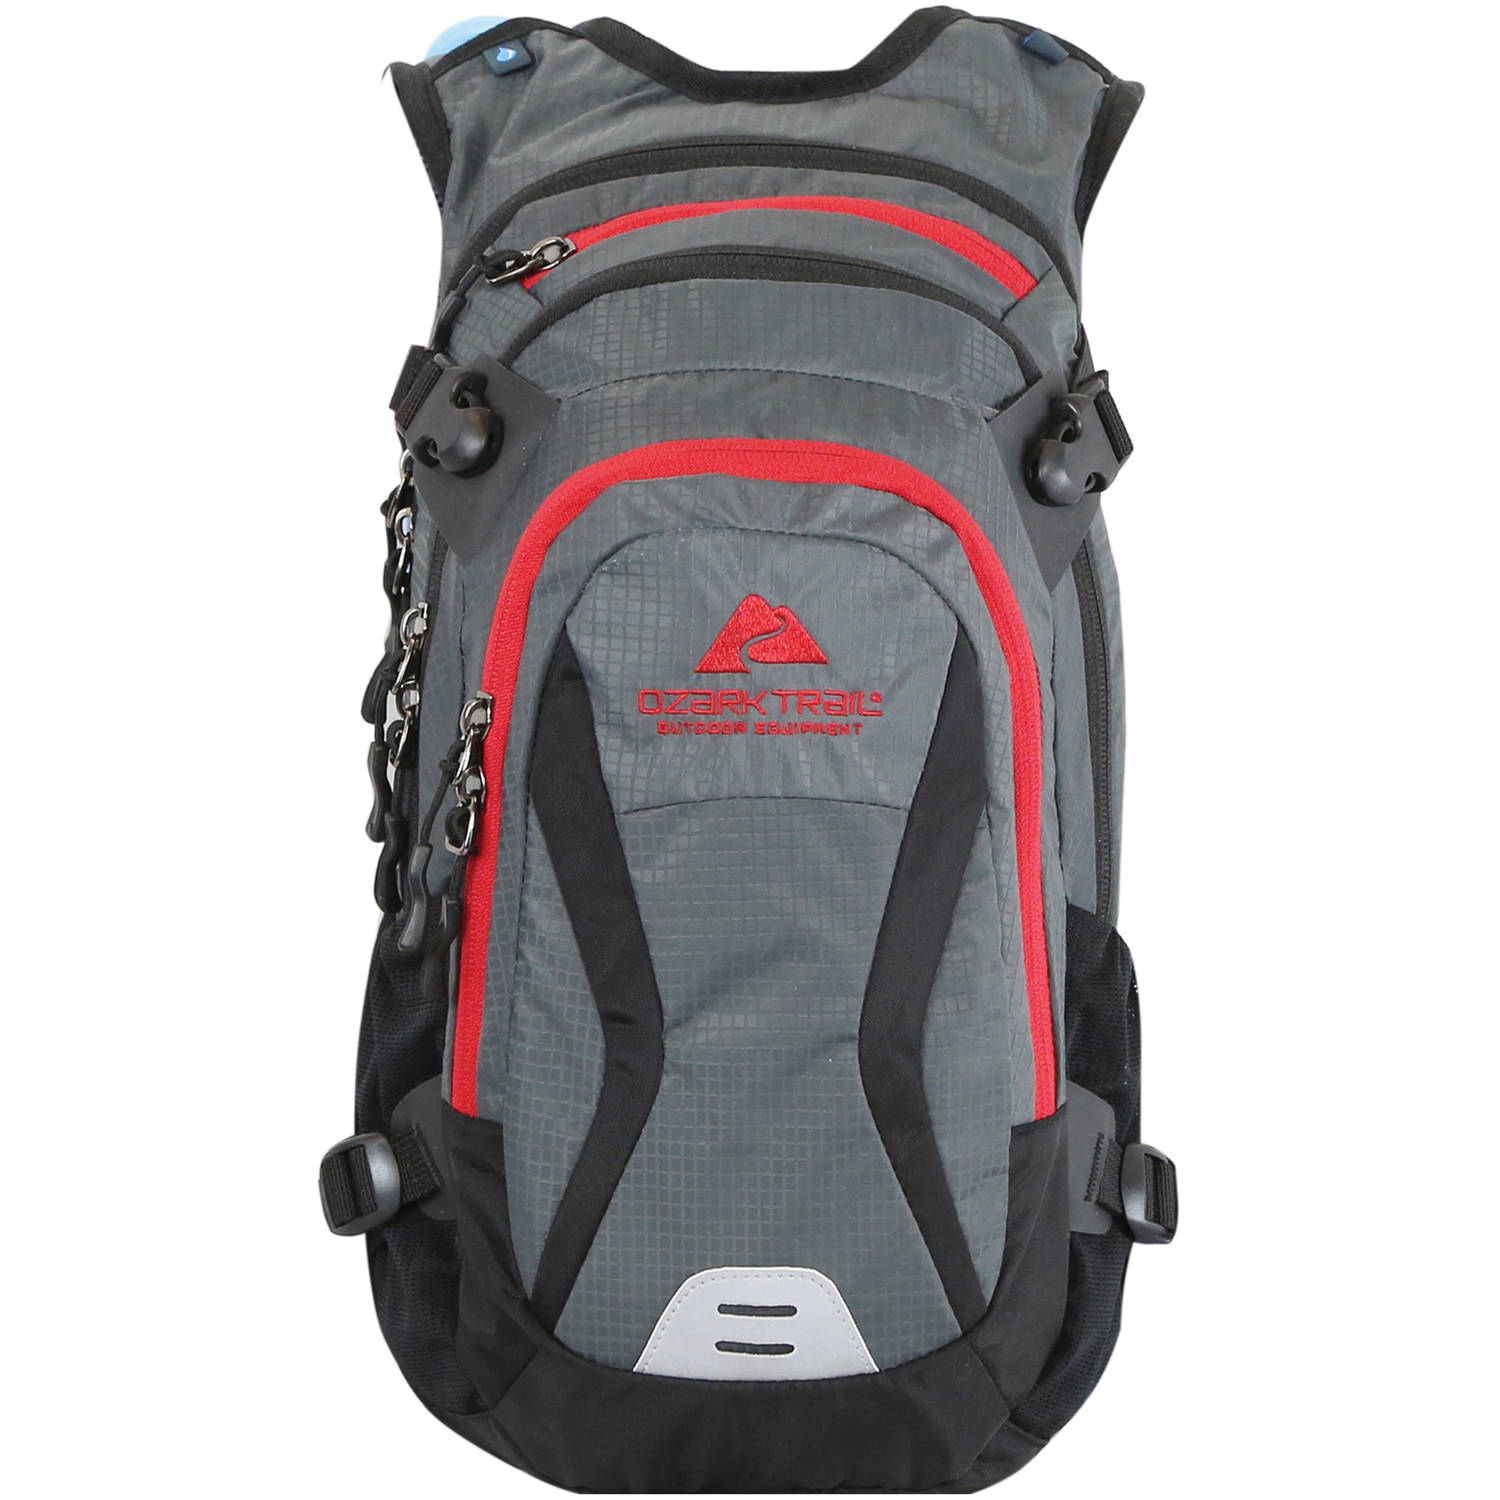 Ozark Trail Gonzo Hydration Pack with 2L Reservoir